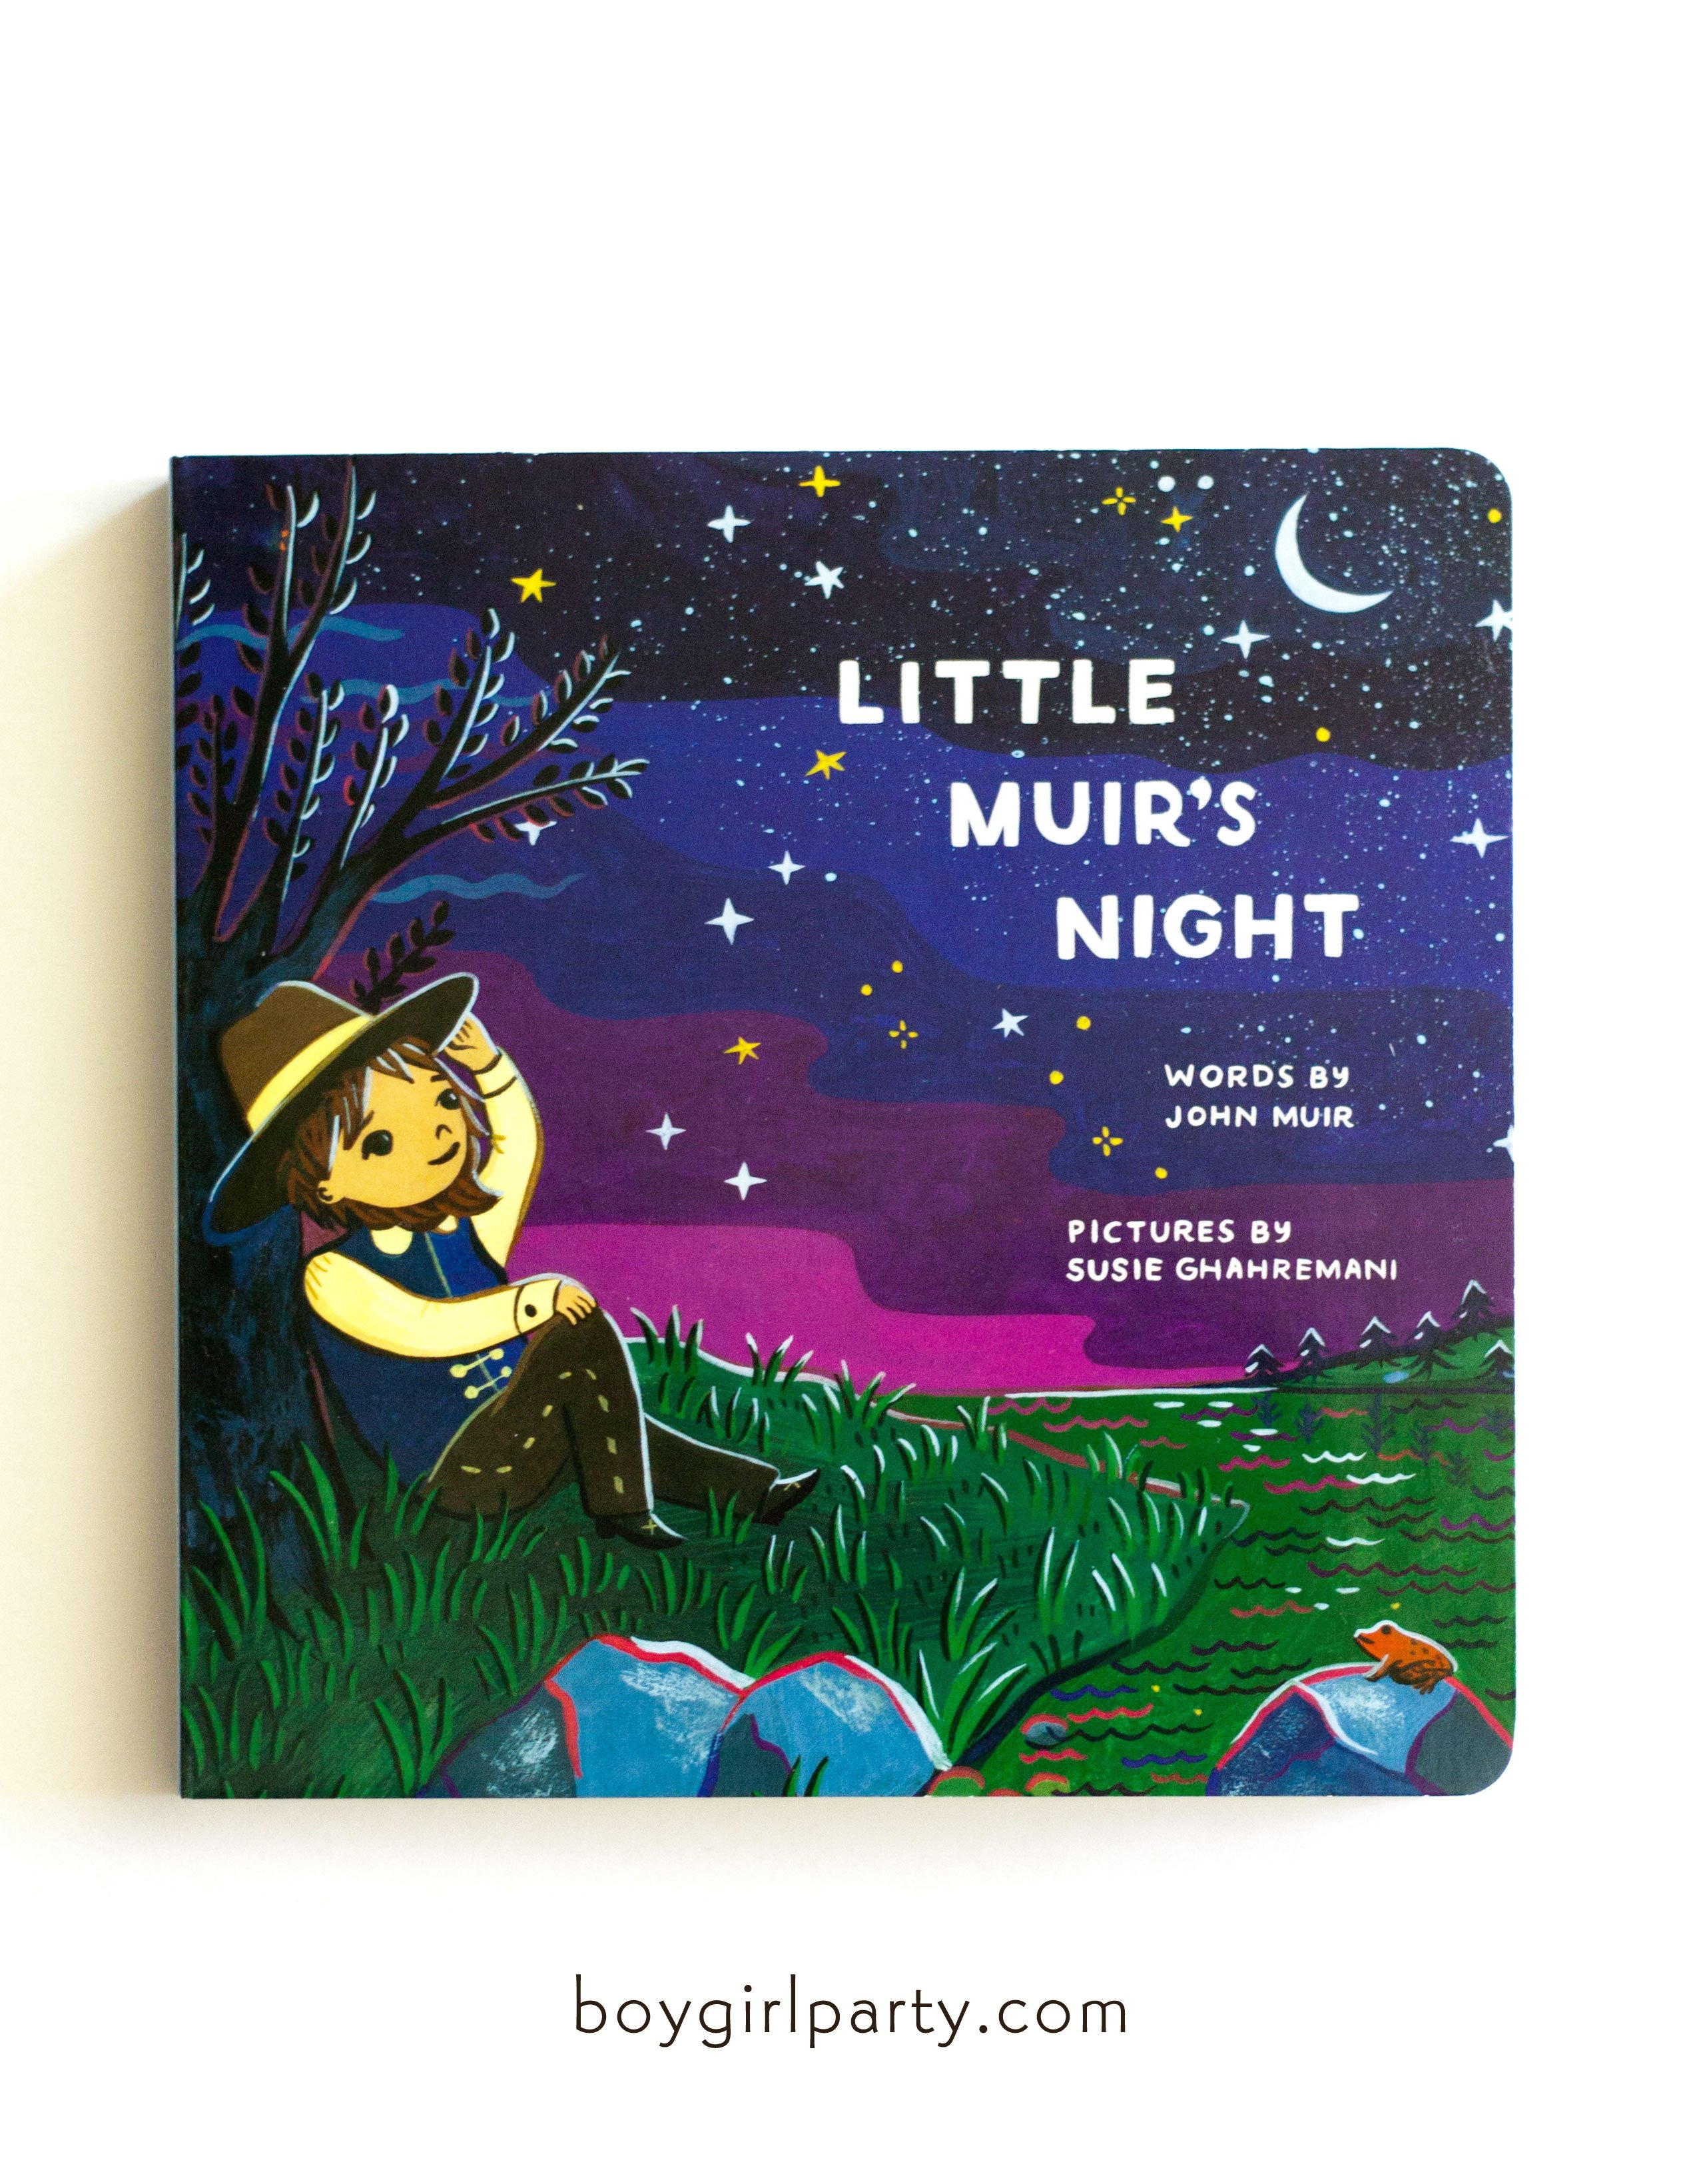 Image of Little Muir's Night: Bedtime Book for Kids illustrated by Susie Ghahremani